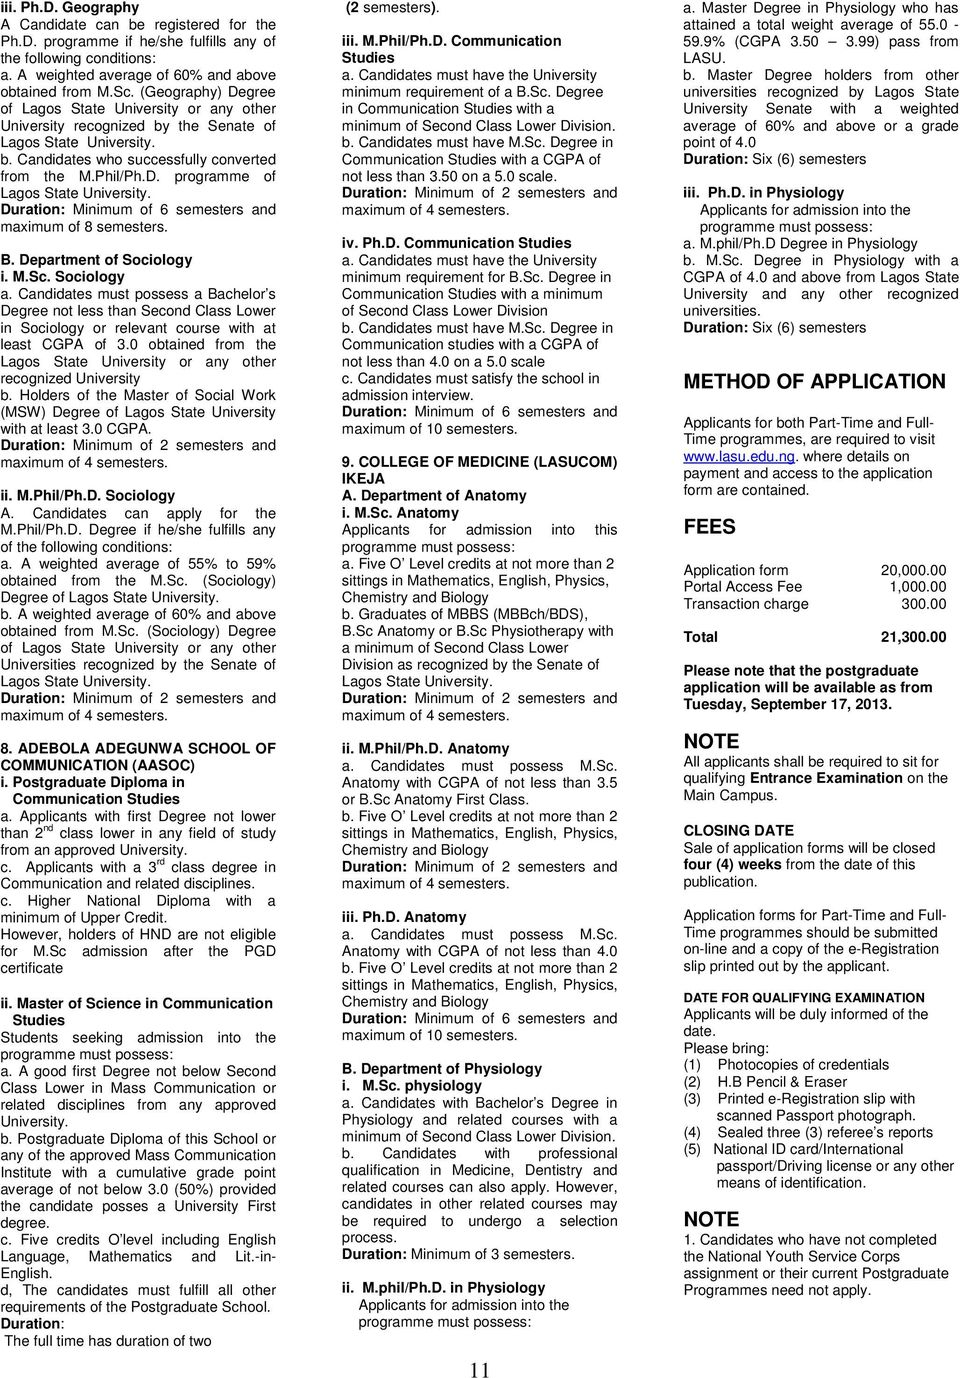 Department of Sociology i. M.Sc. Sociology a. Candidates must a Bachelor s Degree not less than Second Class Lower in Sociology or relevant course with at least CGPA of 3.